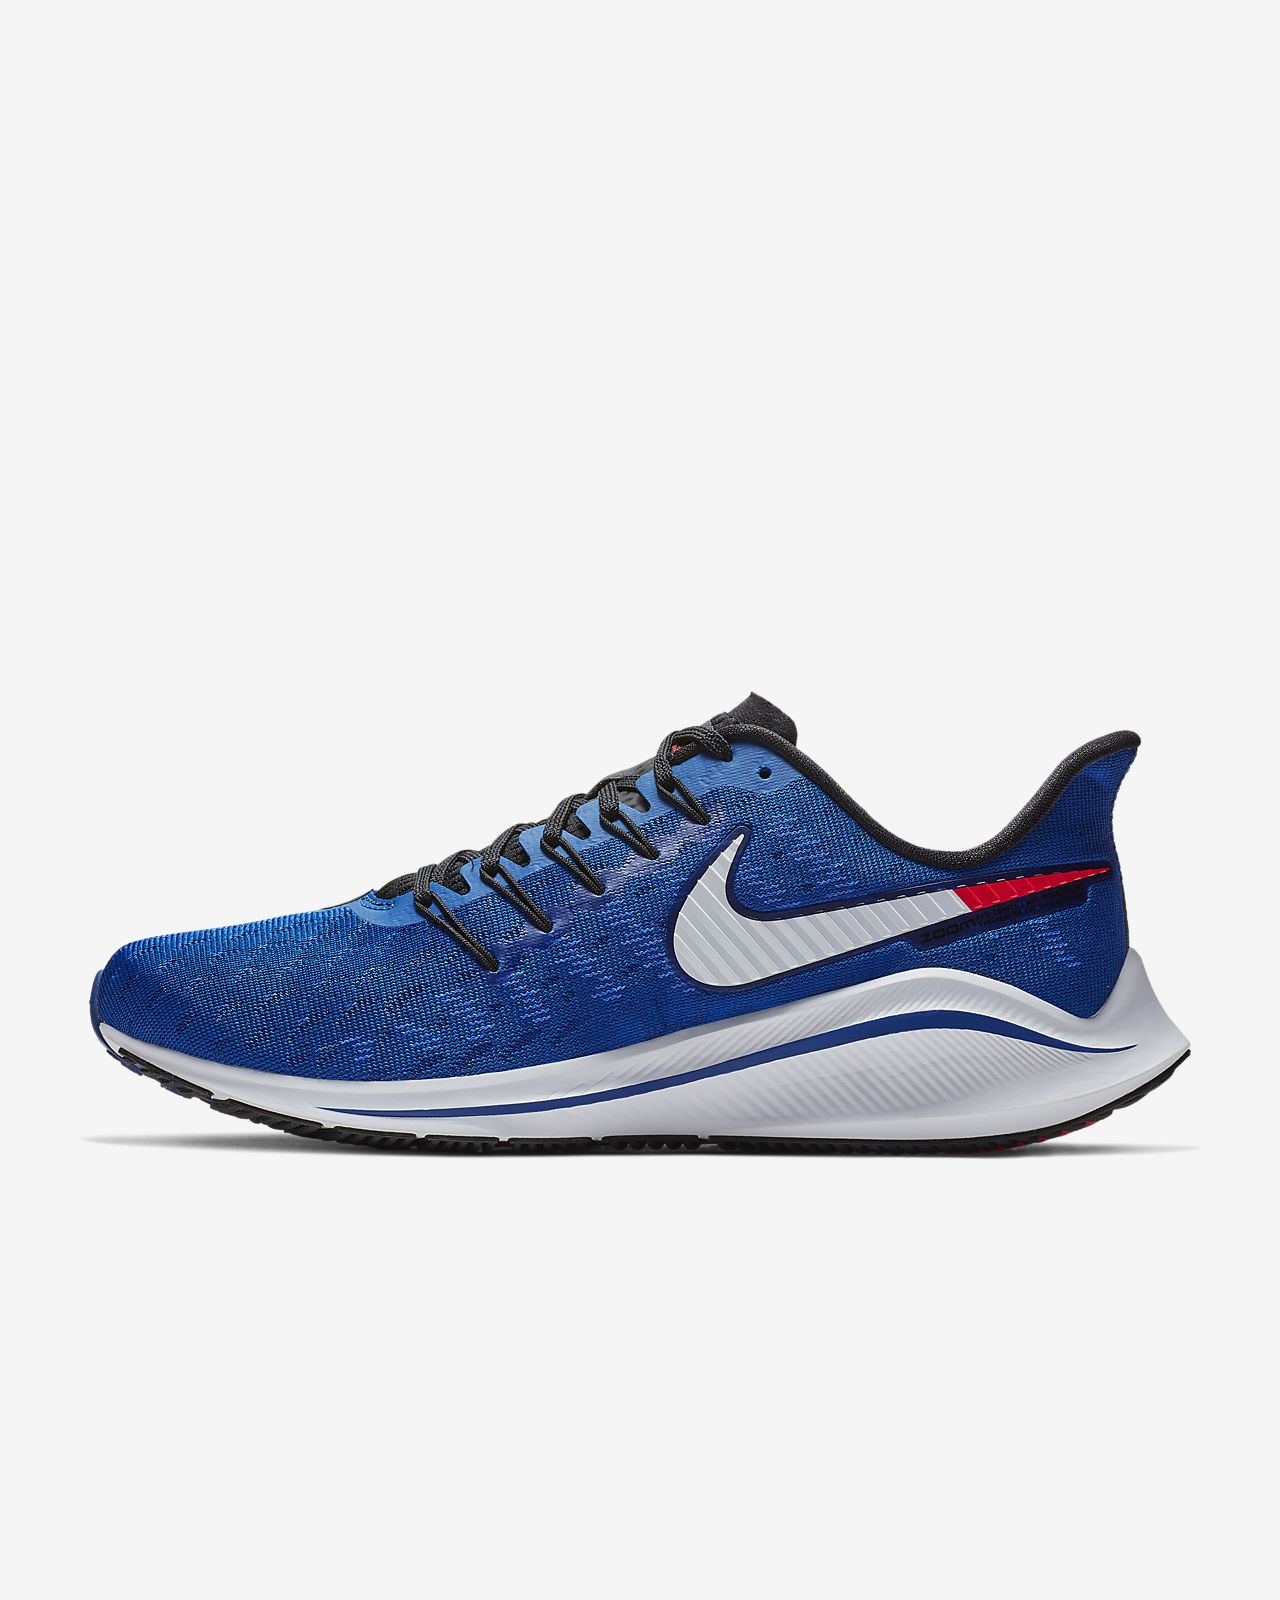 c2f58b8756719 Nike Air Zoom Vomero 14 Men s Running Shoe. Nike.com GB